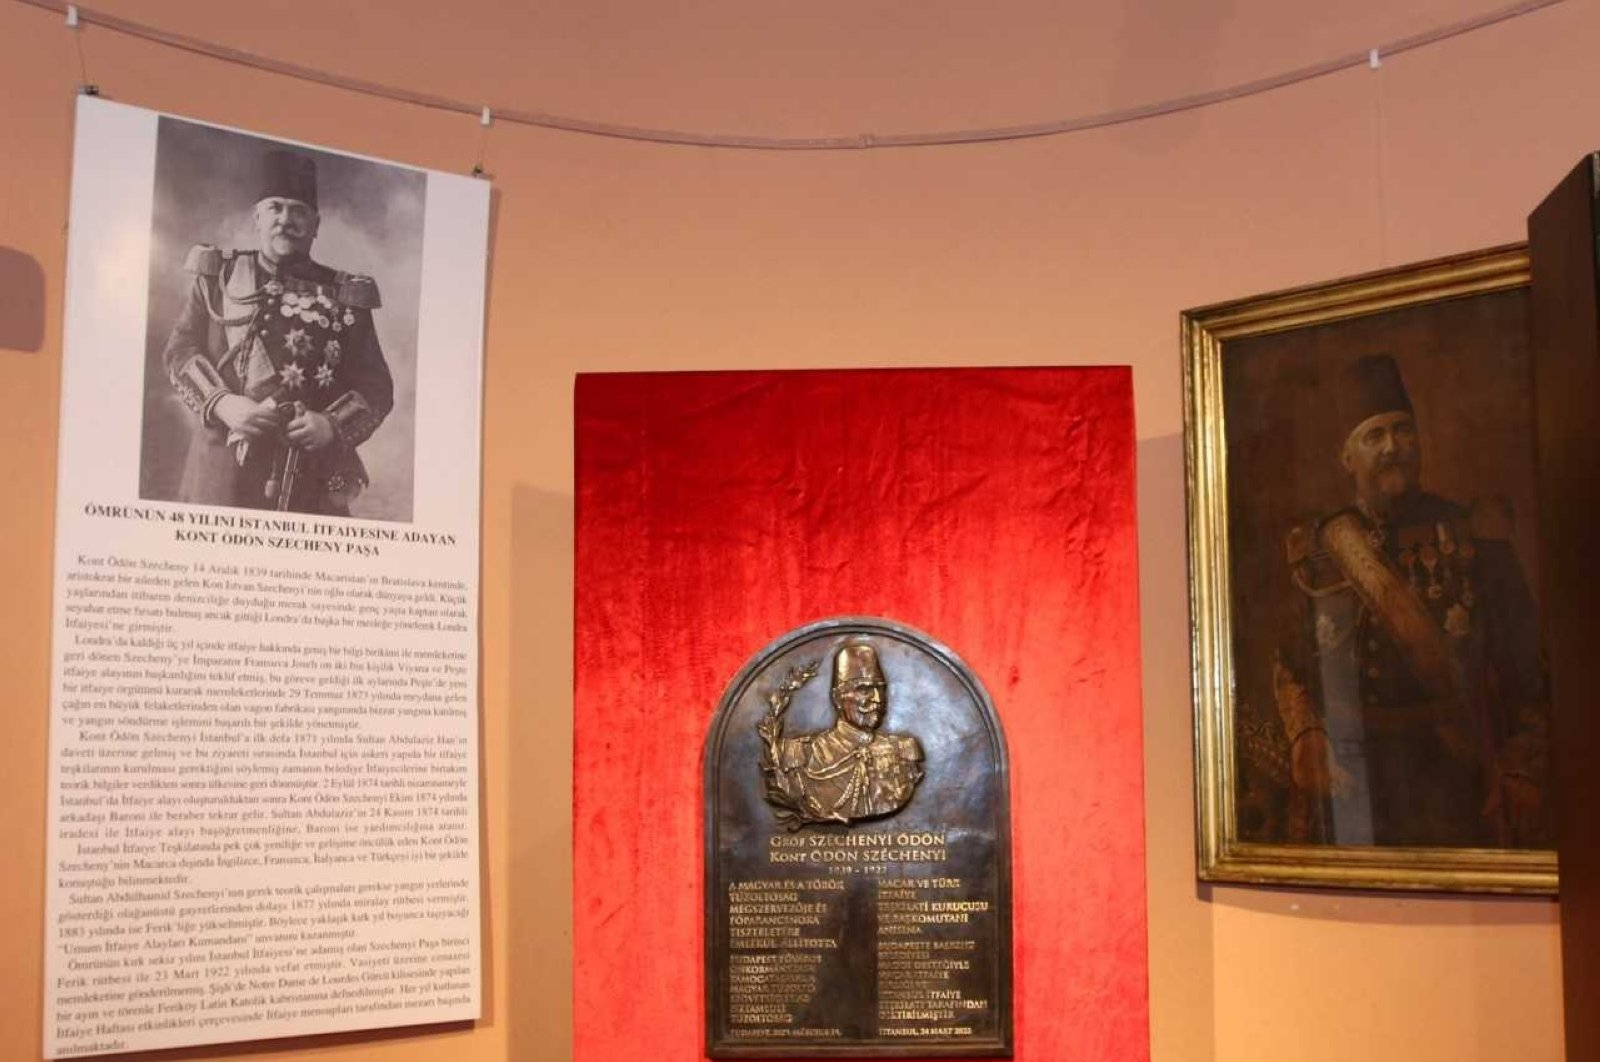 View of the plaque and portraits of Ödön Szechenyi at the museum, in Istanbul, Turkey, Oct. 7, 2020.